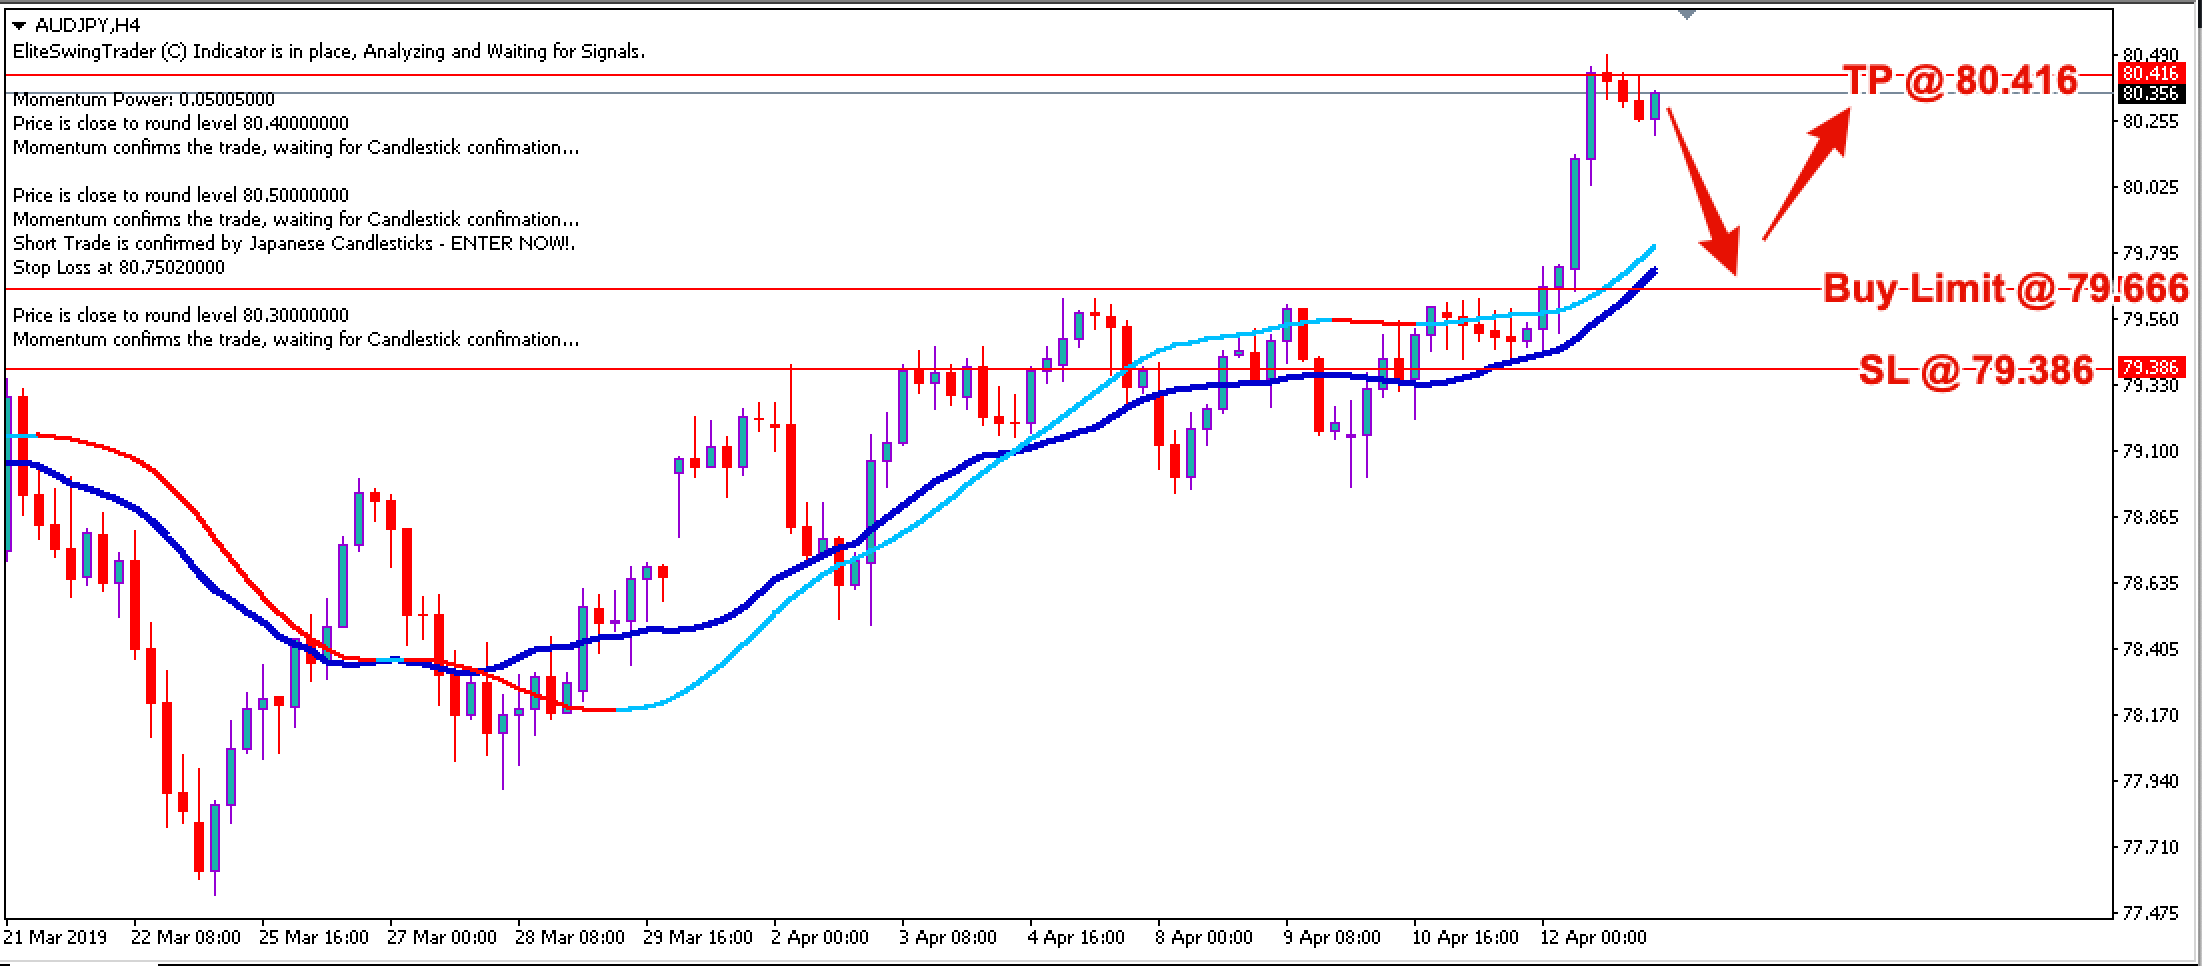 Swing Trading Strategy AUDJPY – 15th April 2019